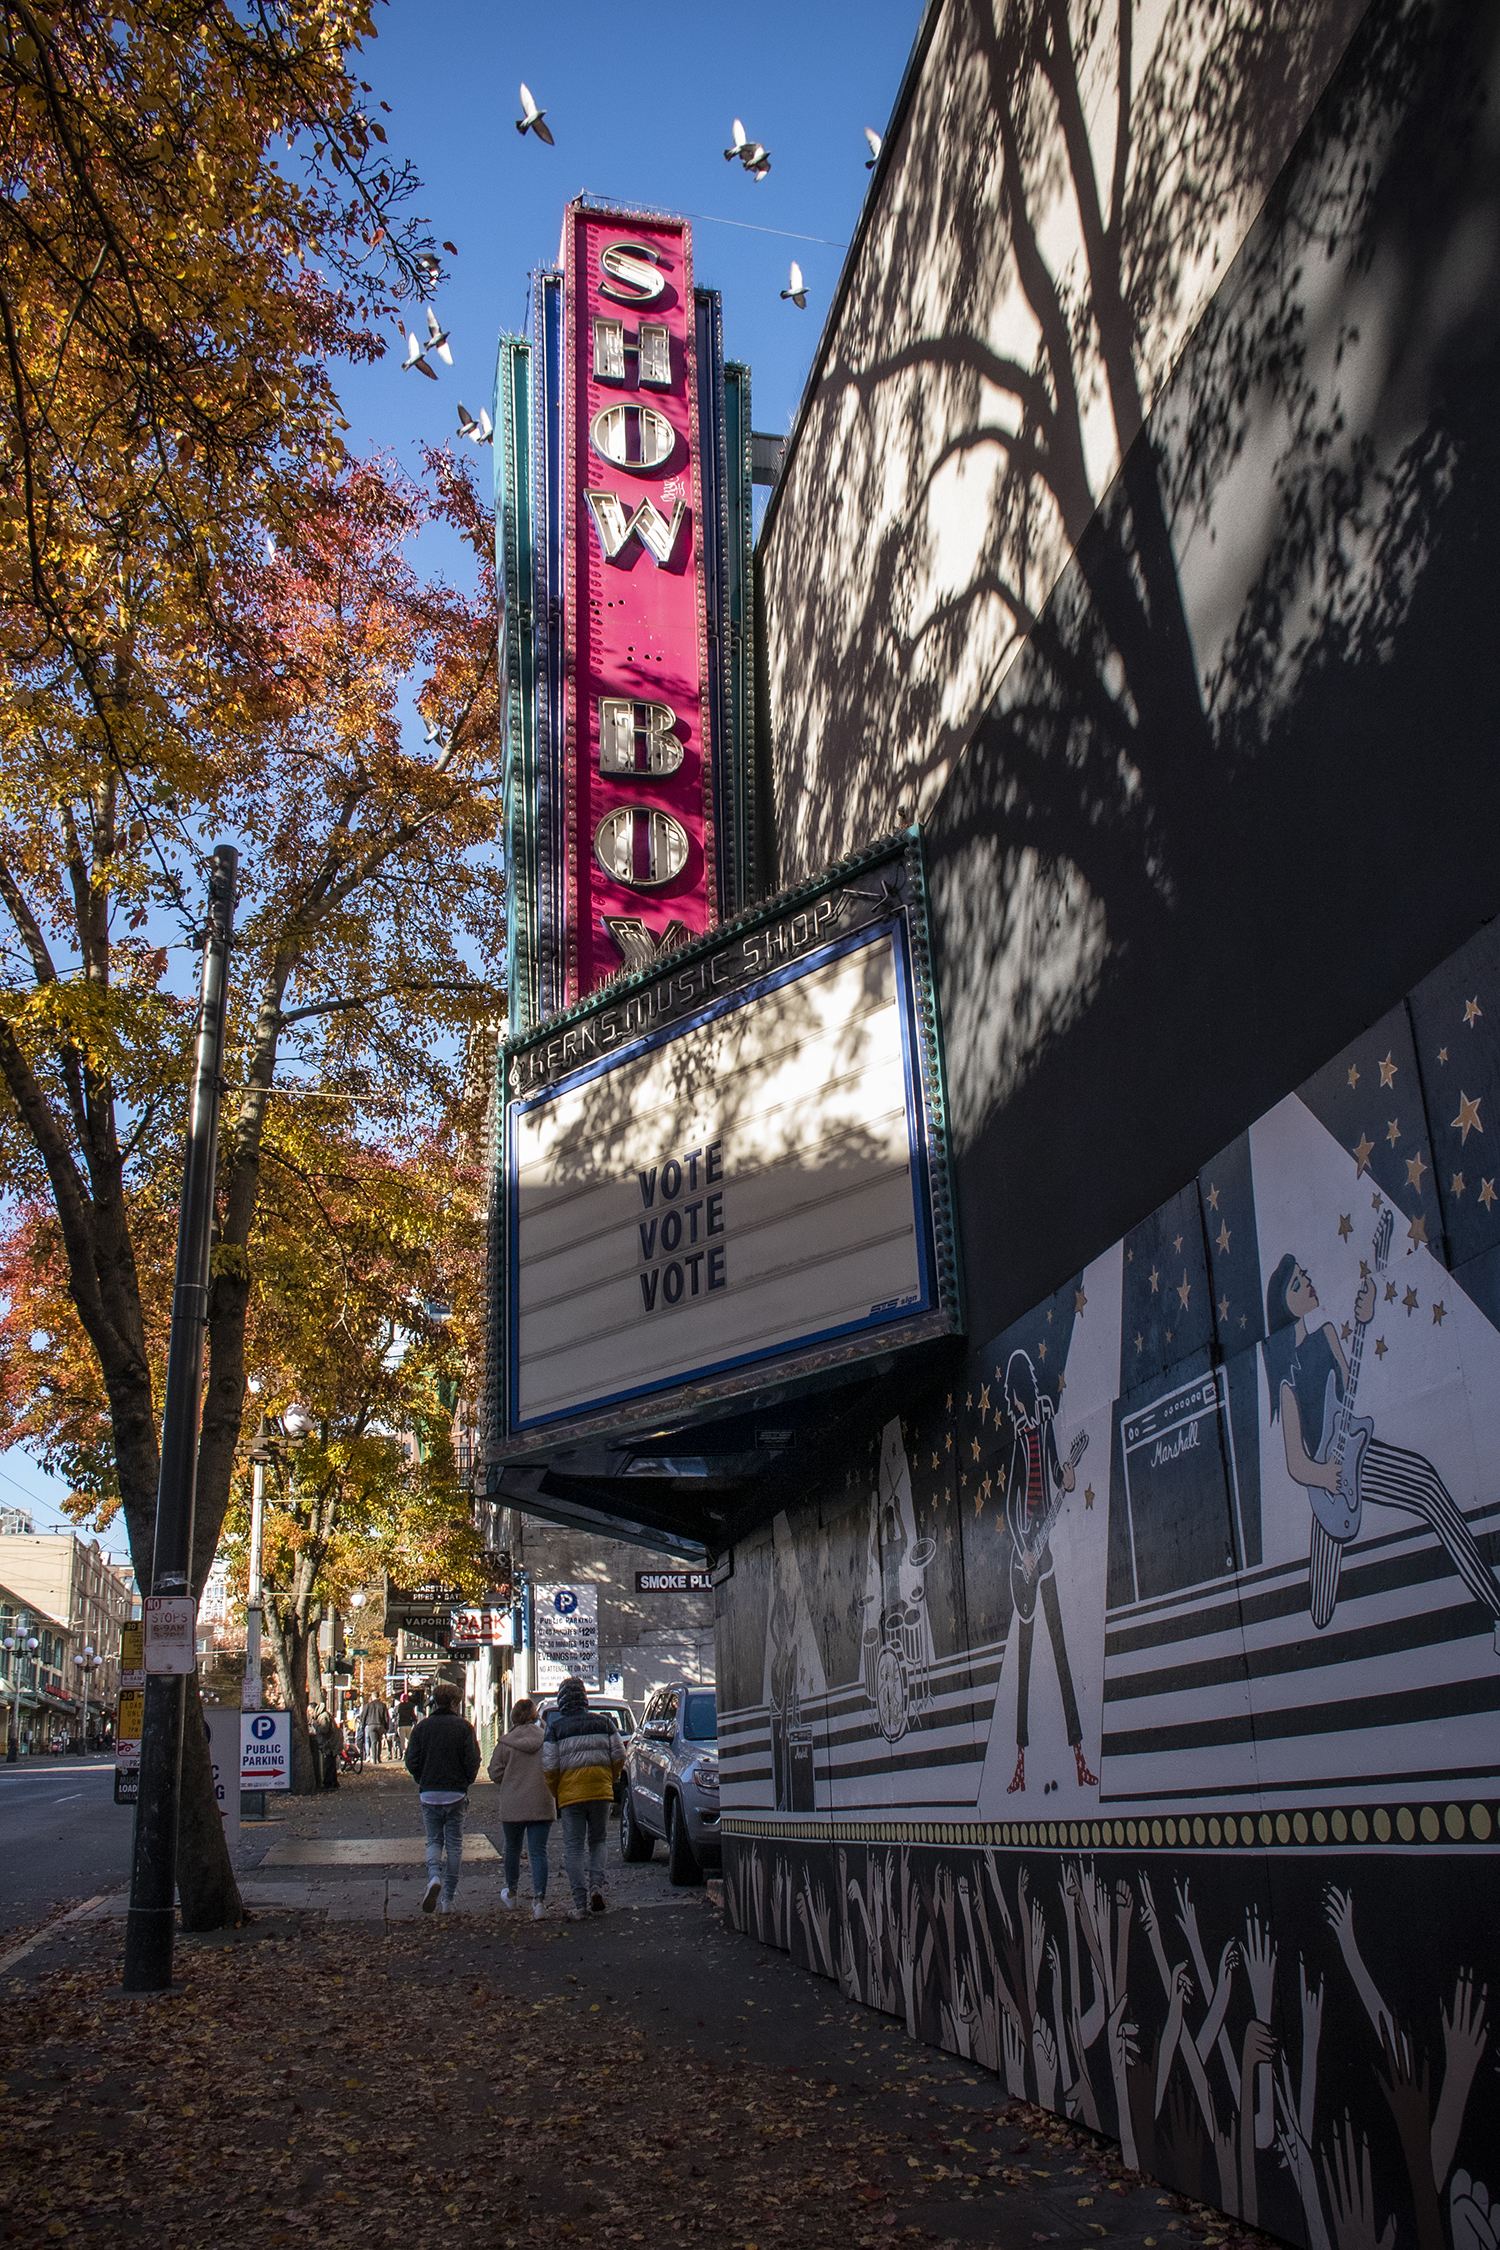 "Founded in 1939, Showbox Theater has operated under half-a-dozen names, but all with one thing in common: good live music. Popular bands have graced the venue for decades, from ballroom acts like Duke Ellington, Muddy Waters and Nat King Cole, to Seattle's grunge groups like Pearl Jam and Soundgarden. In 2019, nearing a demolition status, the spot earned its City of Seattle Landmark title after an outpouring of ""Save the Showbox"" petitions. (Image: Rachael Jones / Seattle Refined)"